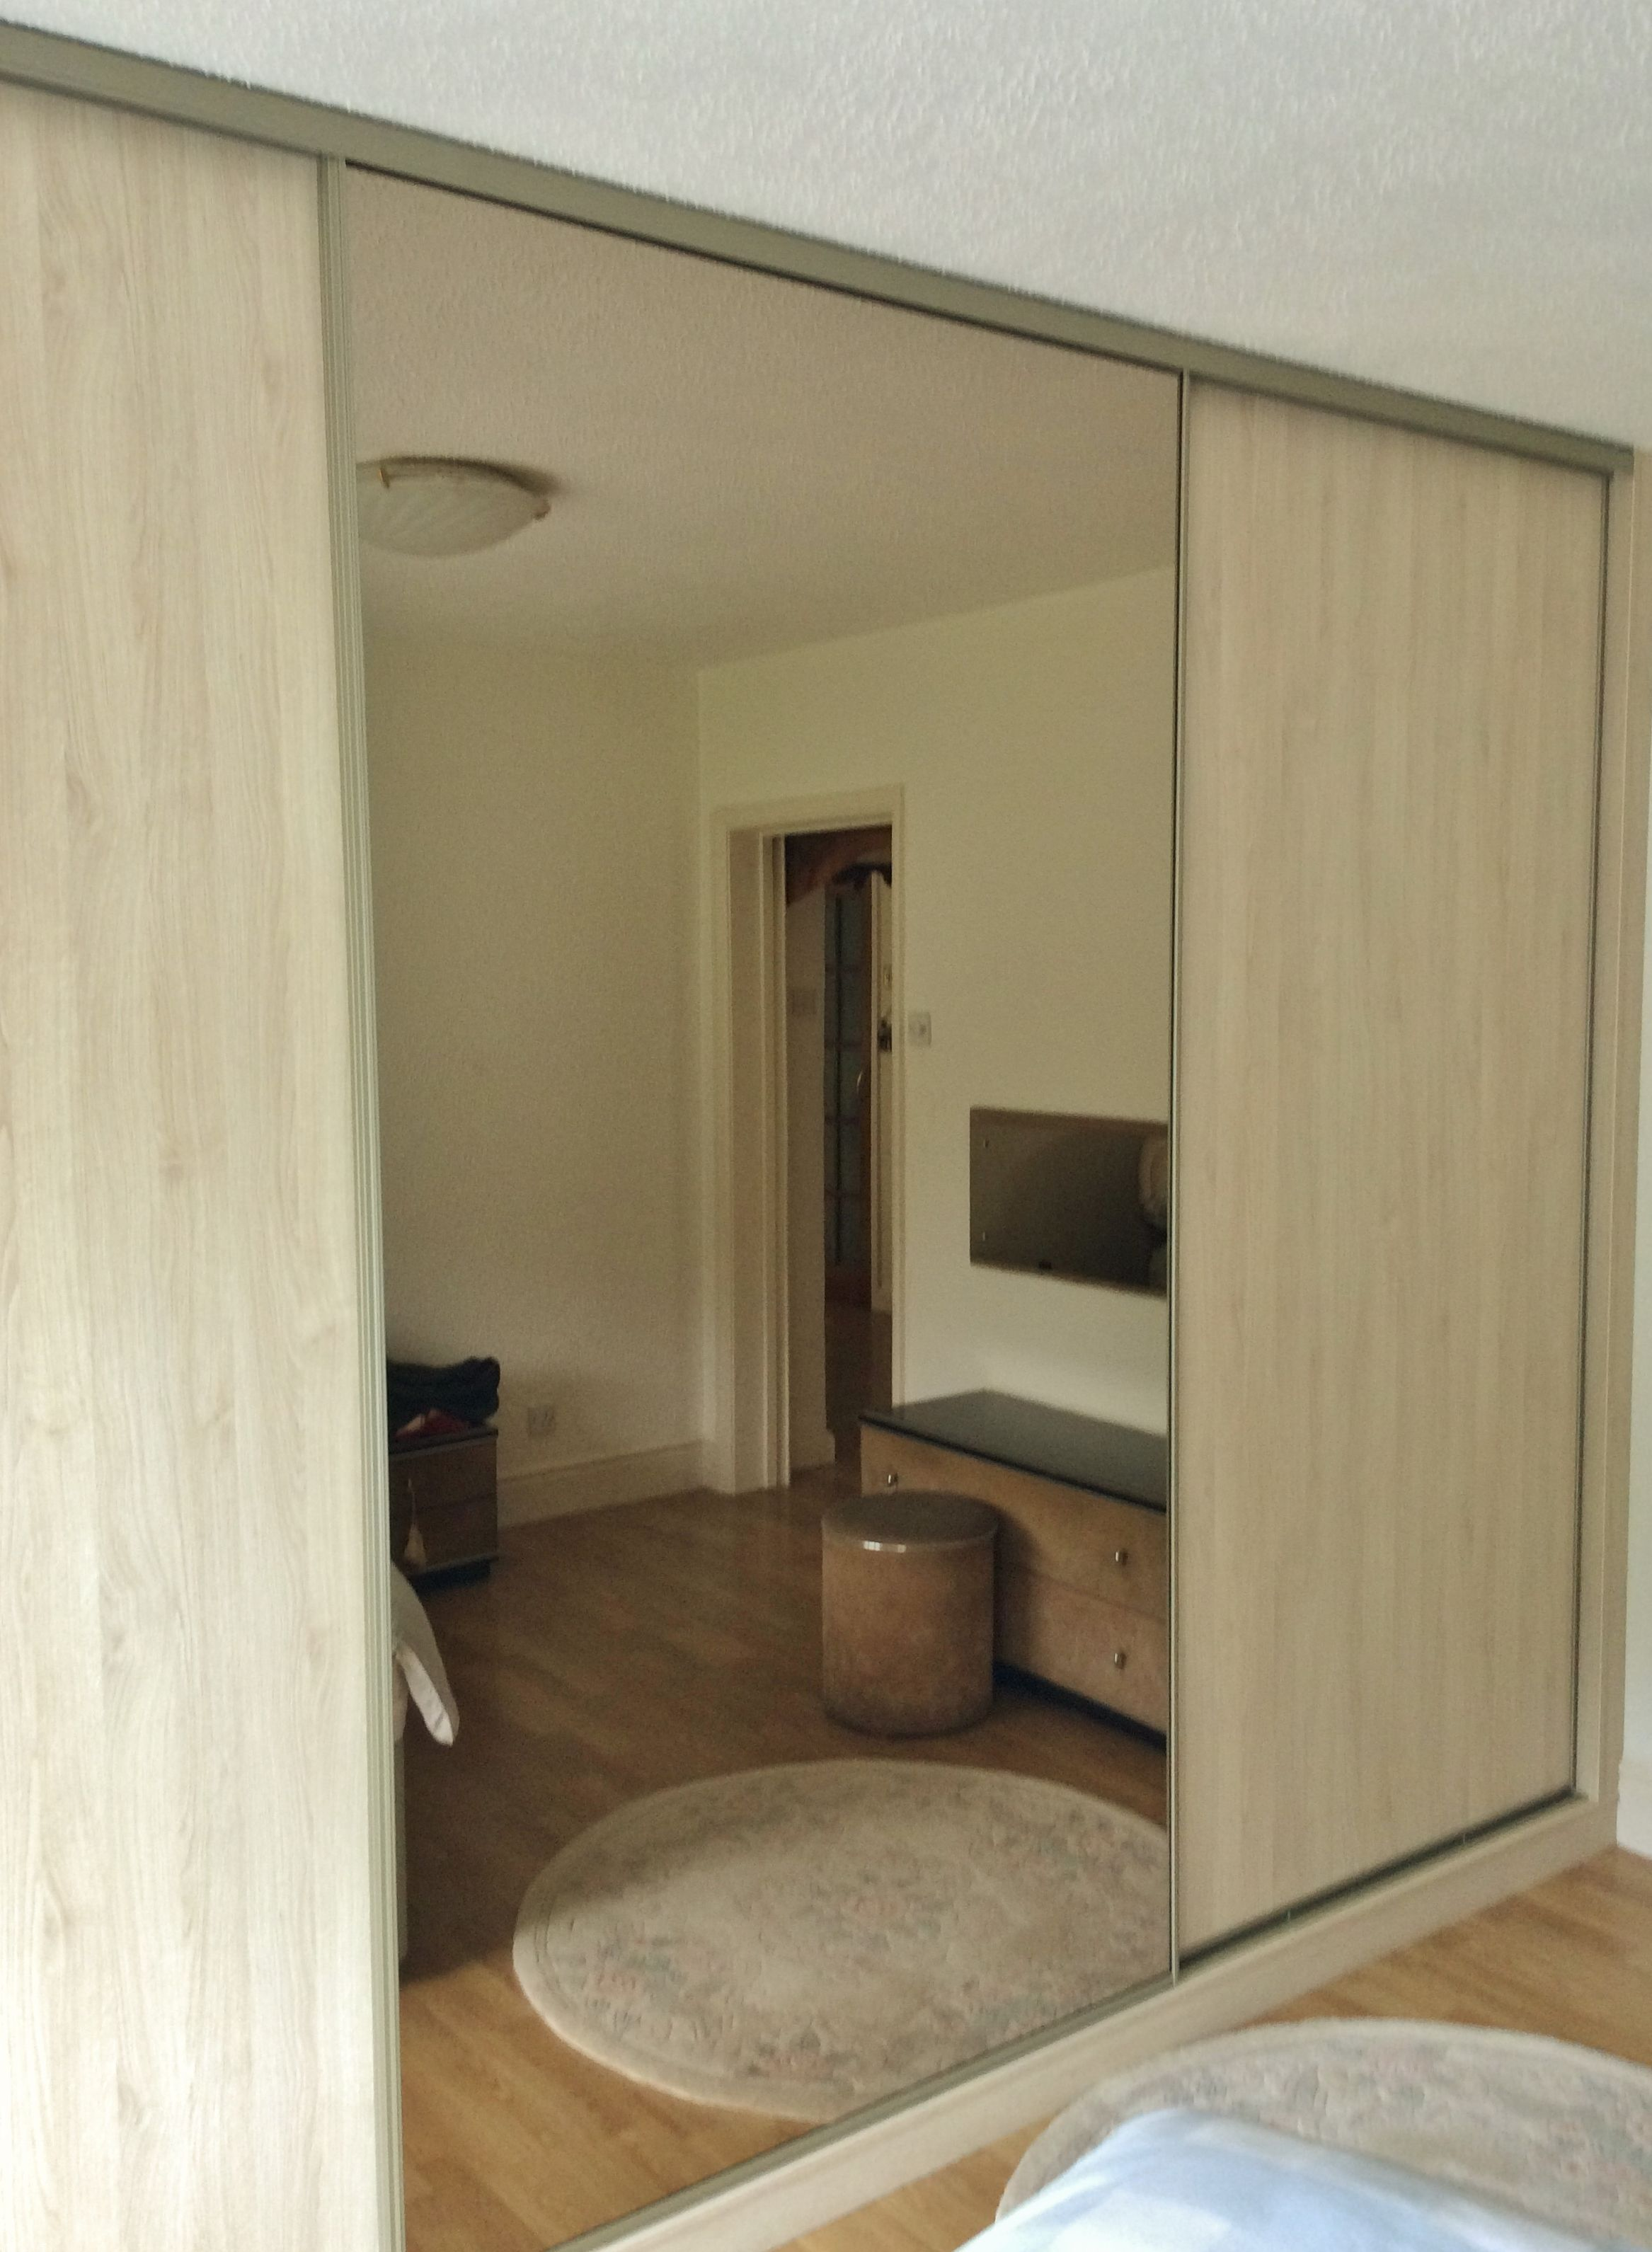 3 Door Wardrobe In Mirror And Light Oak Fitted Bedrooms Fitted